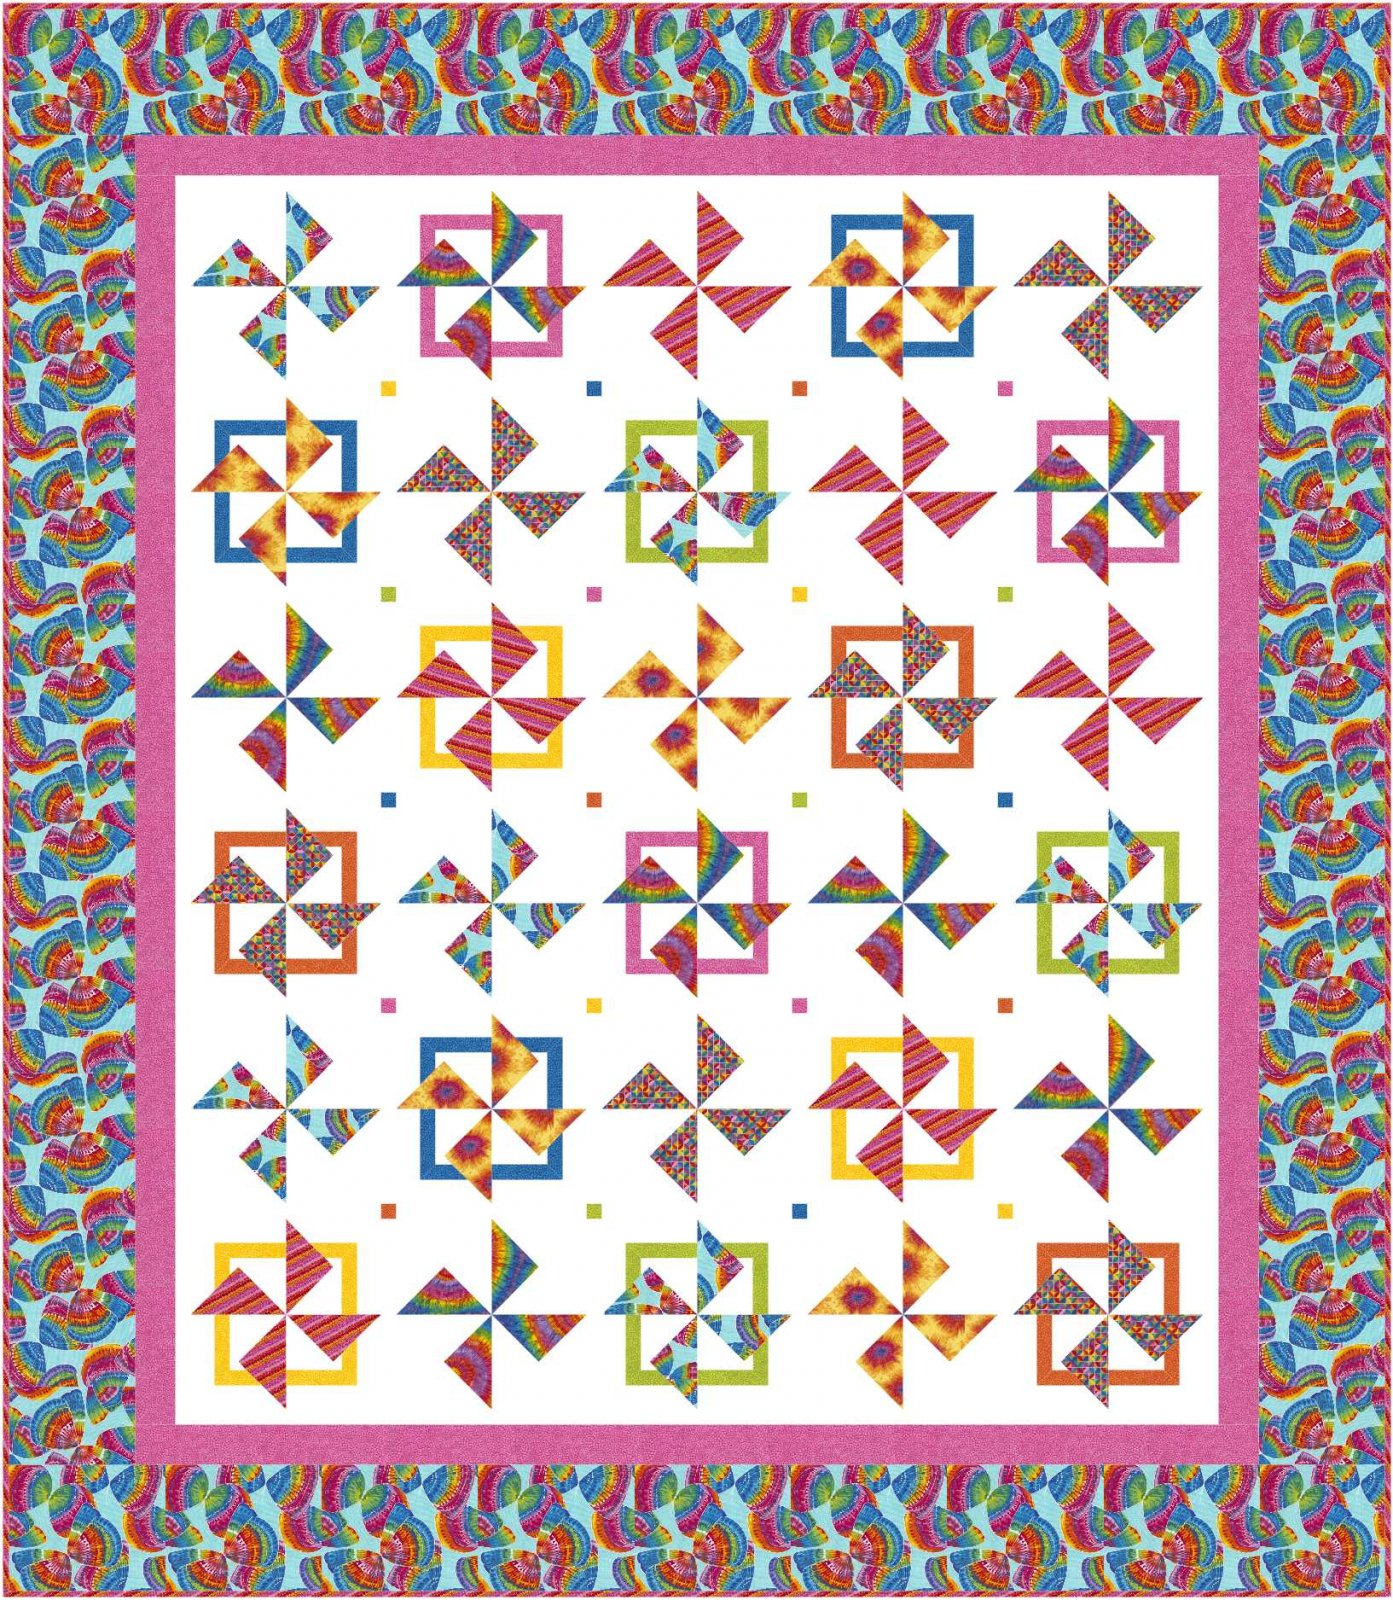 Spin City quilt pattern - downloadable